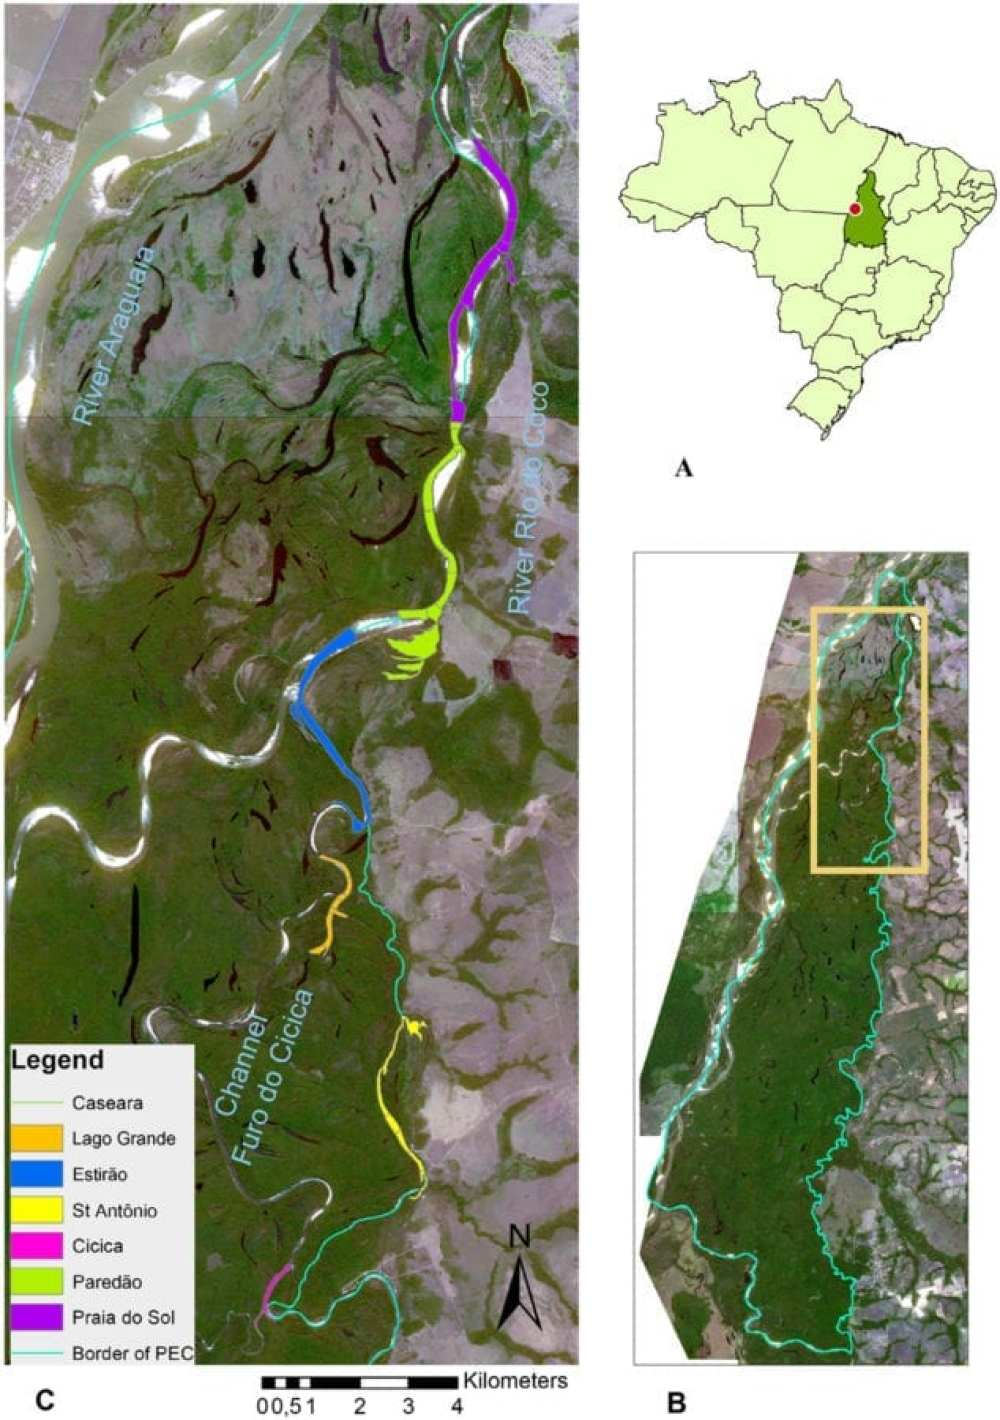 Map of the study site. (A) Location of the Tocantins State, Central Brazil, indicating the area where Parque Estadual do Cant~ao (PEC) is located (dot). (B) PEC border (green line), within which the current study has been carried out (orange frame). (C) Study site map with the location of the six sectors where river dolphins were surveyed. Survey sections were located along the Channel Furo do Cicica and the River do C^oco as well as secondary river arms and lakes. (Source of satellite images: Rapid Eye, July 2015).